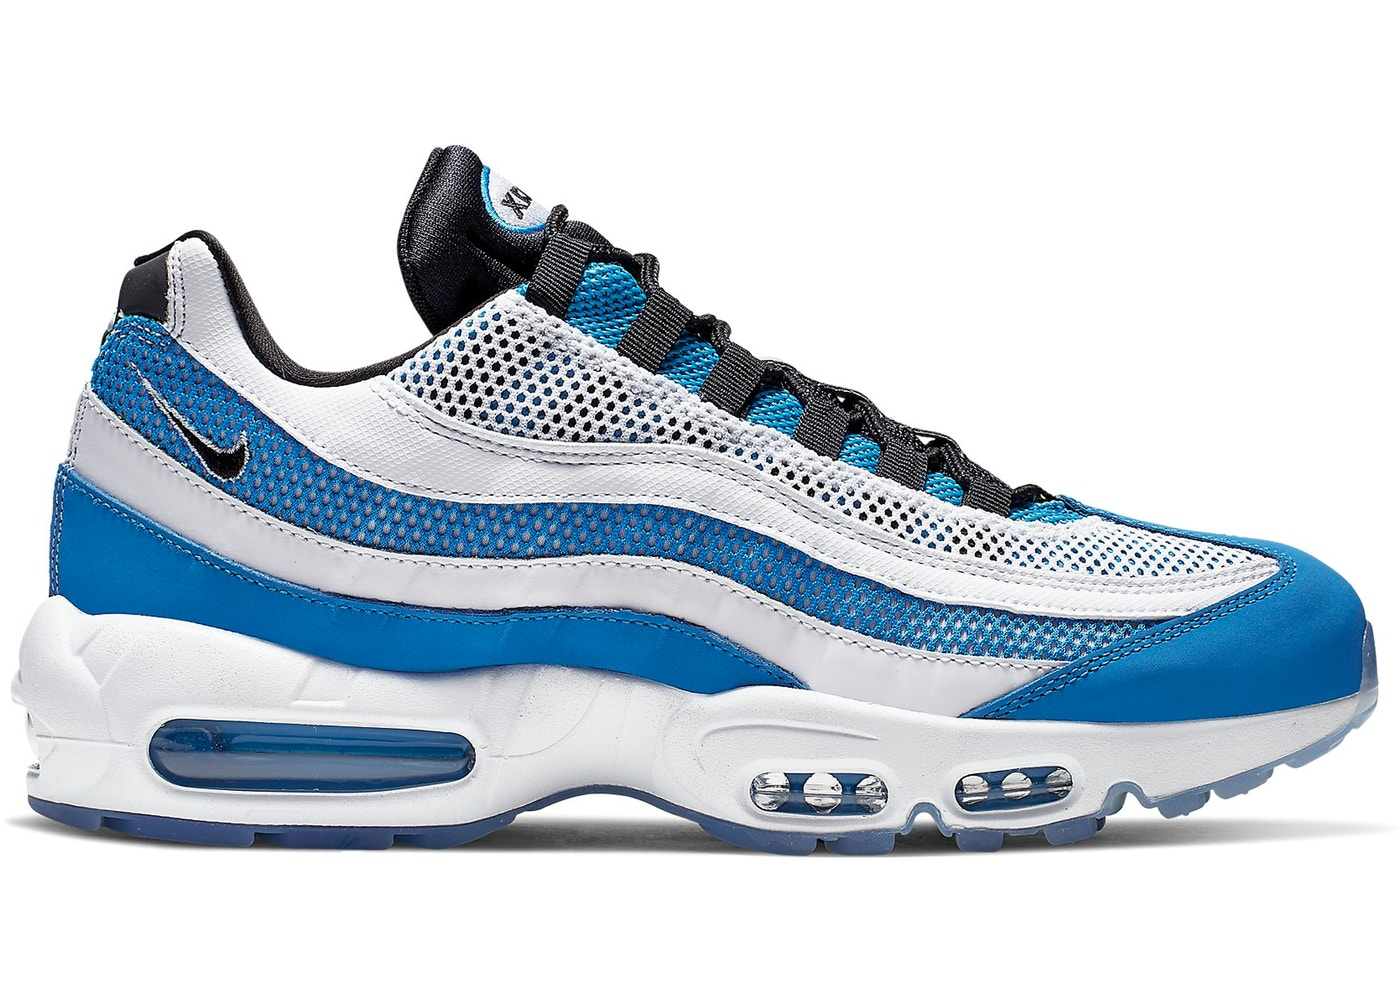 4433c1d3c7 Nike Air Max 95 Shoes - Release Date